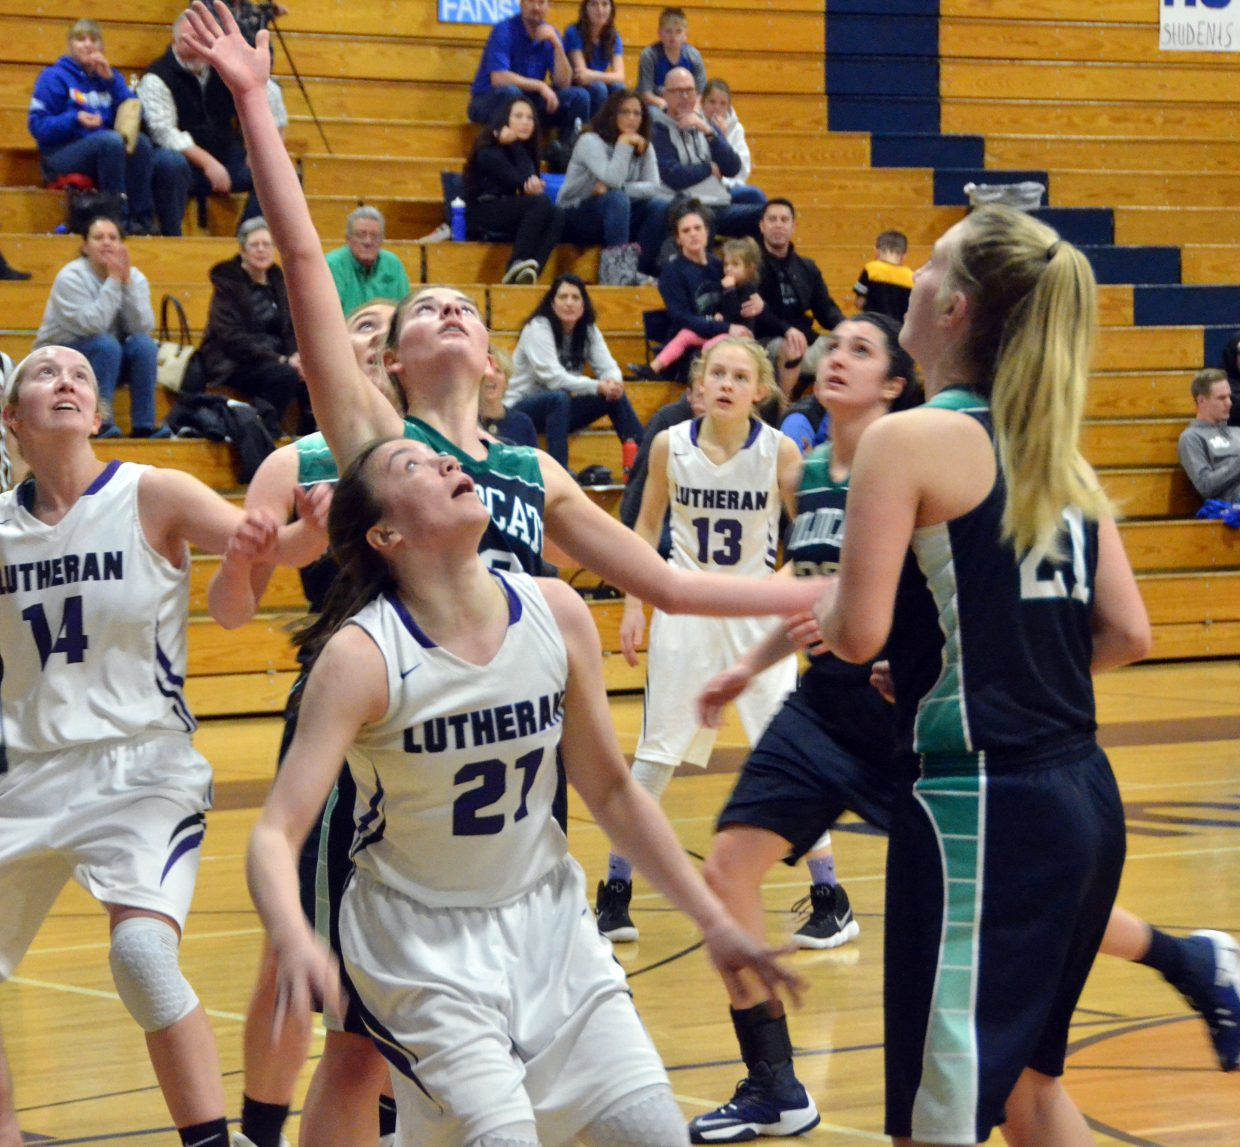 Players with Lutheran and The Academy cluster beneath the basket for a rebound in the Round of 32 at Moffat County High School.